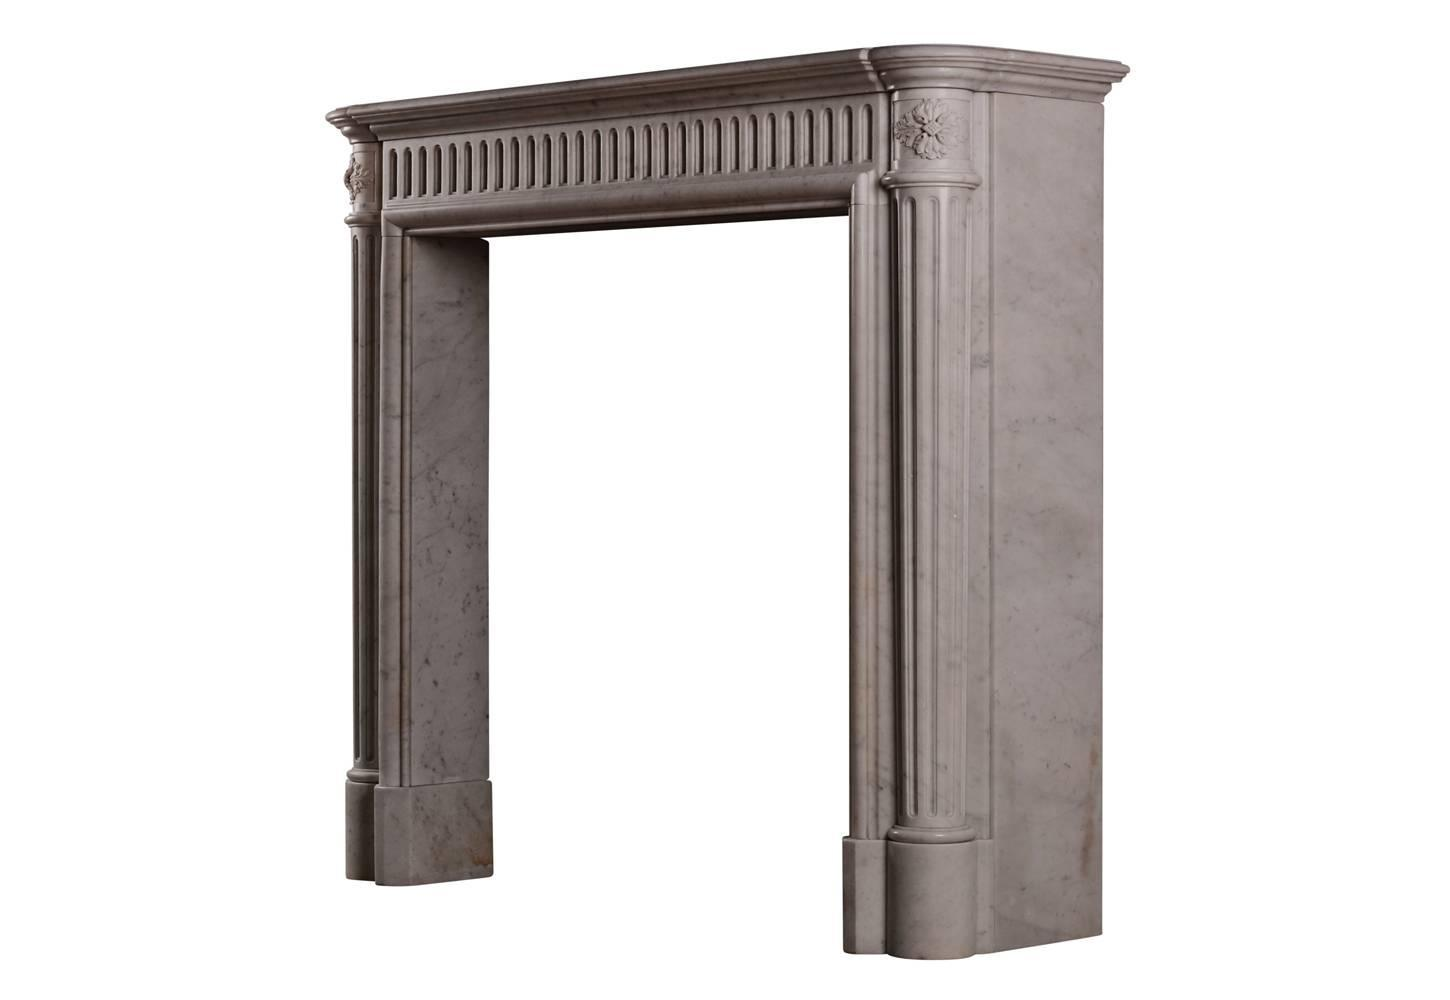 Unusually Tall French Marble Antique Fireplace Mantel For